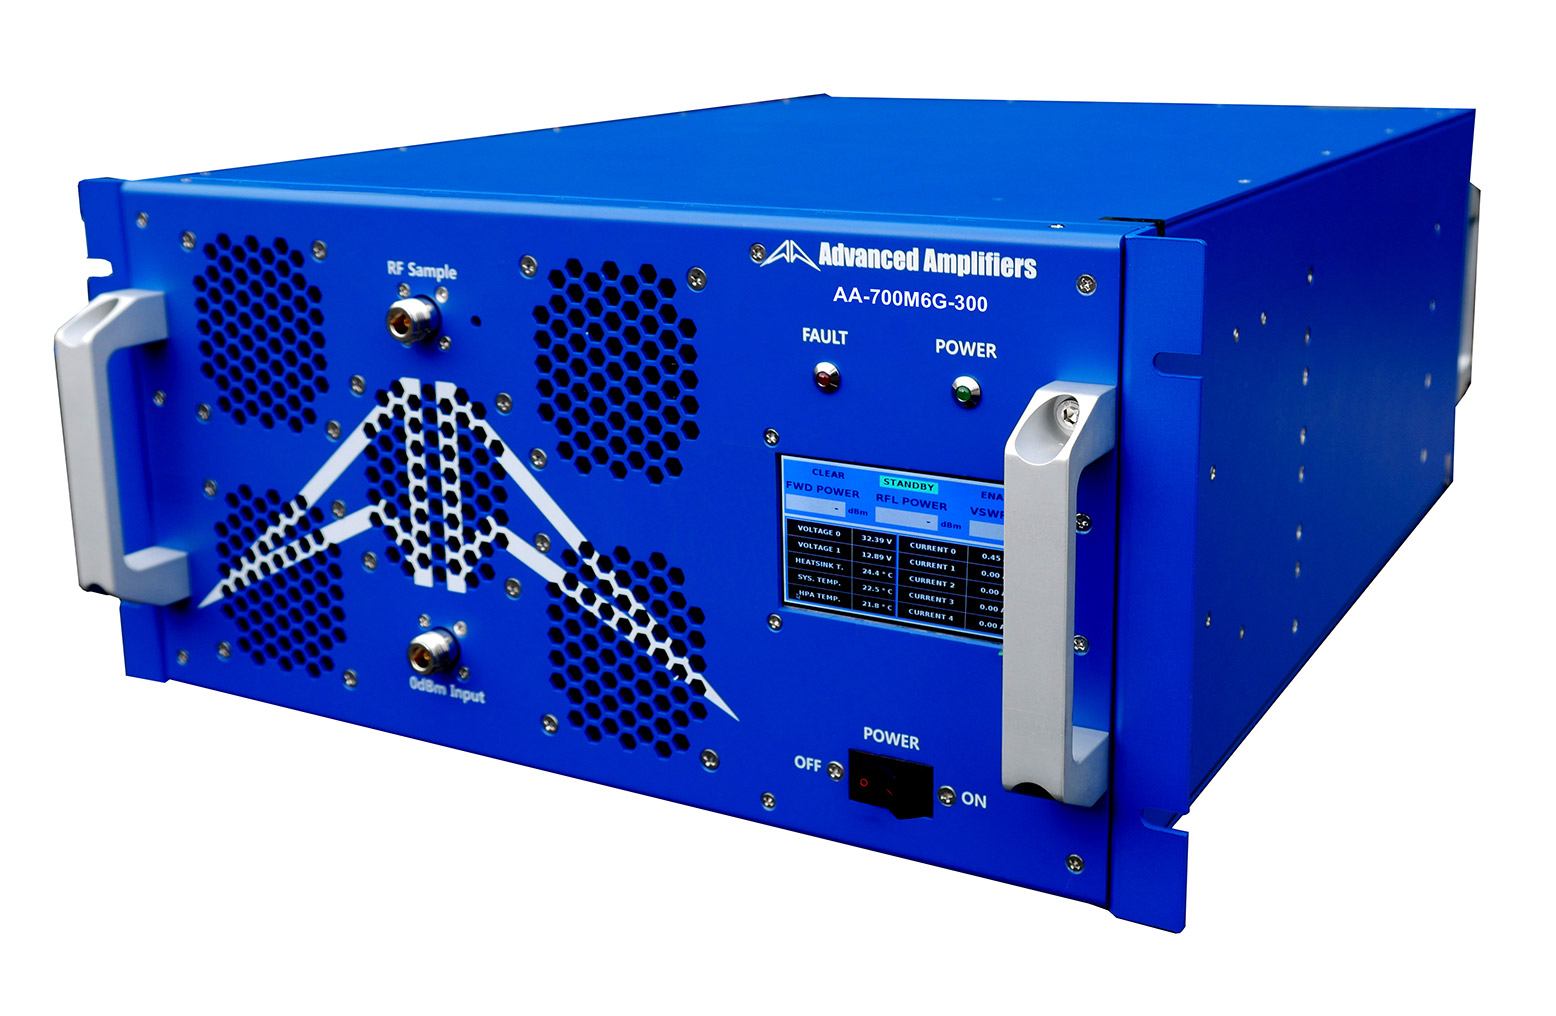 Advanced Amplifiers AA-700M6G-300 Solid State Amplifier | 700 MHz - 6.0 GHz, 300 W